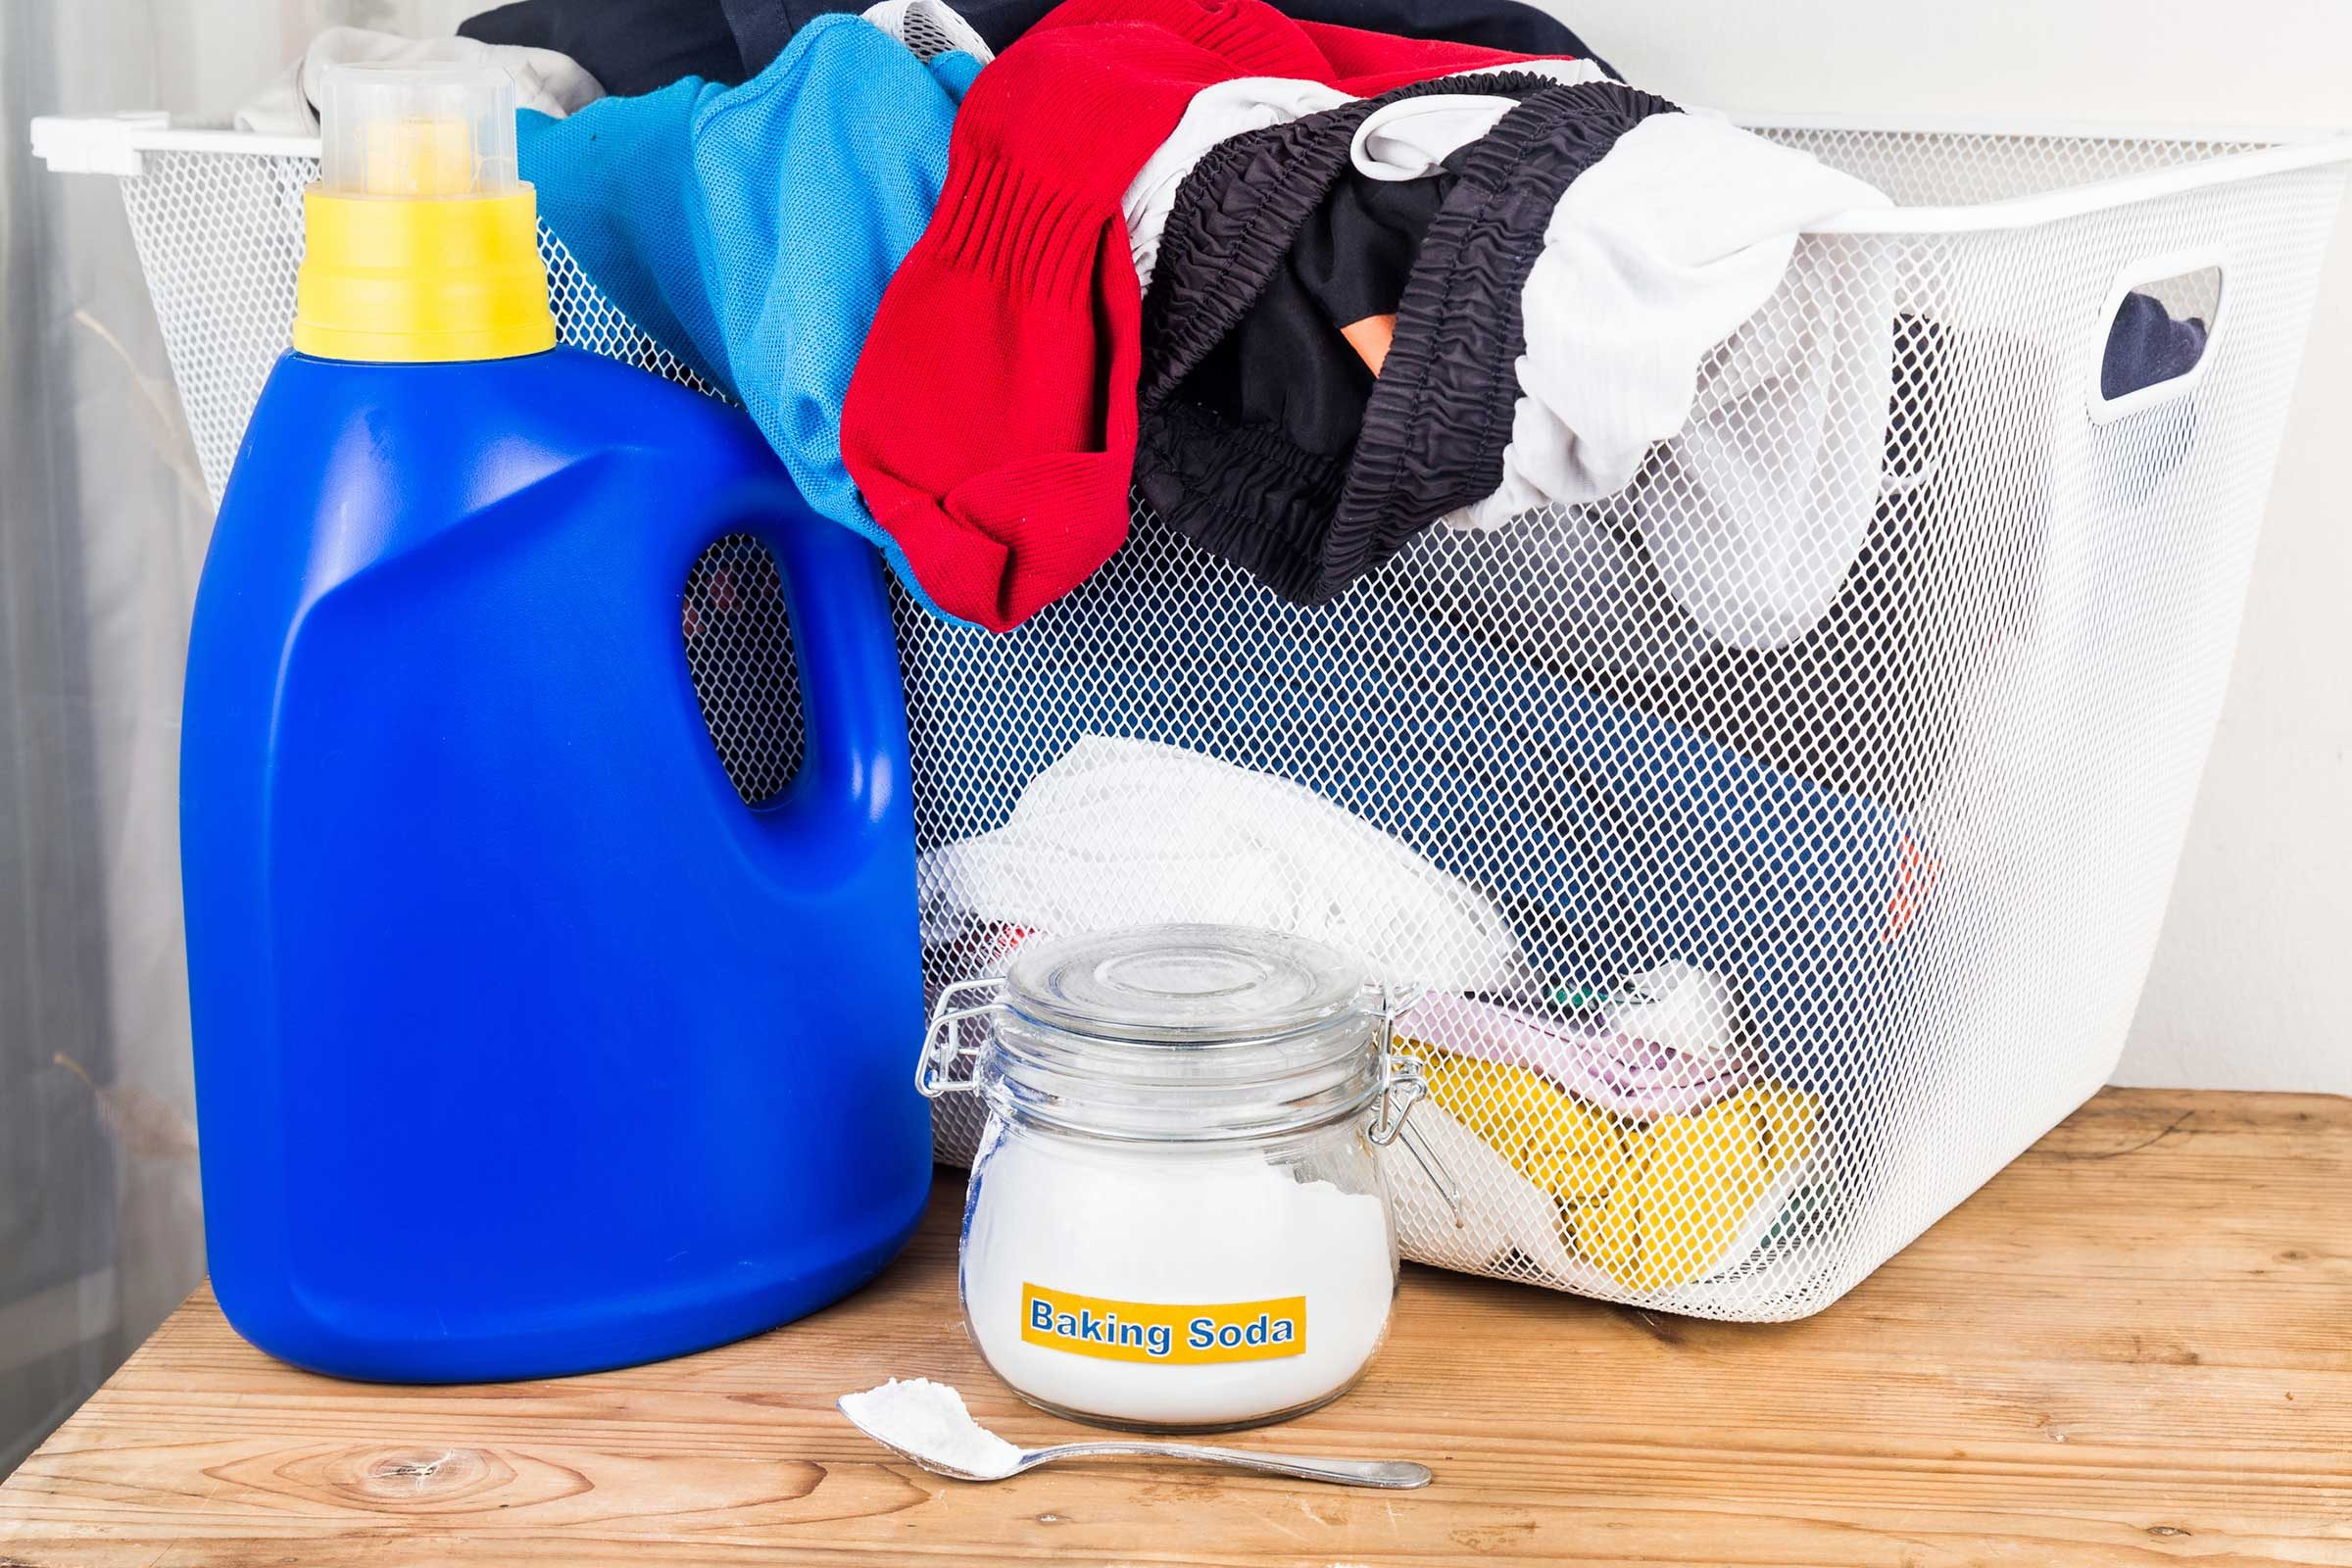 4. Boost Laundry Detergent